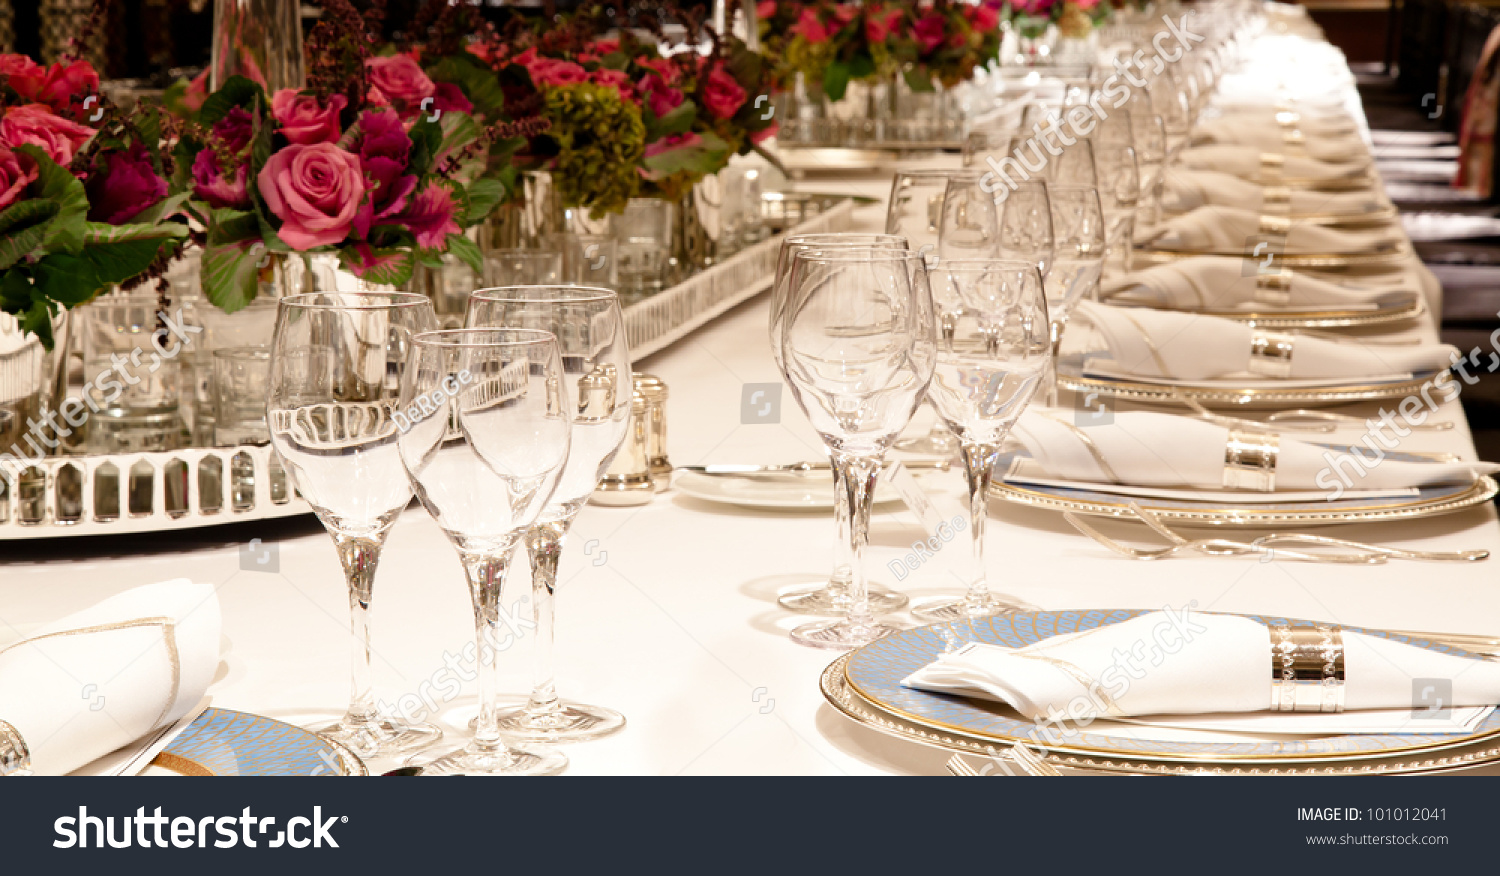 Elegant dinner table setting - Elegant Candlelight Dinner Table Setting At Reception 3